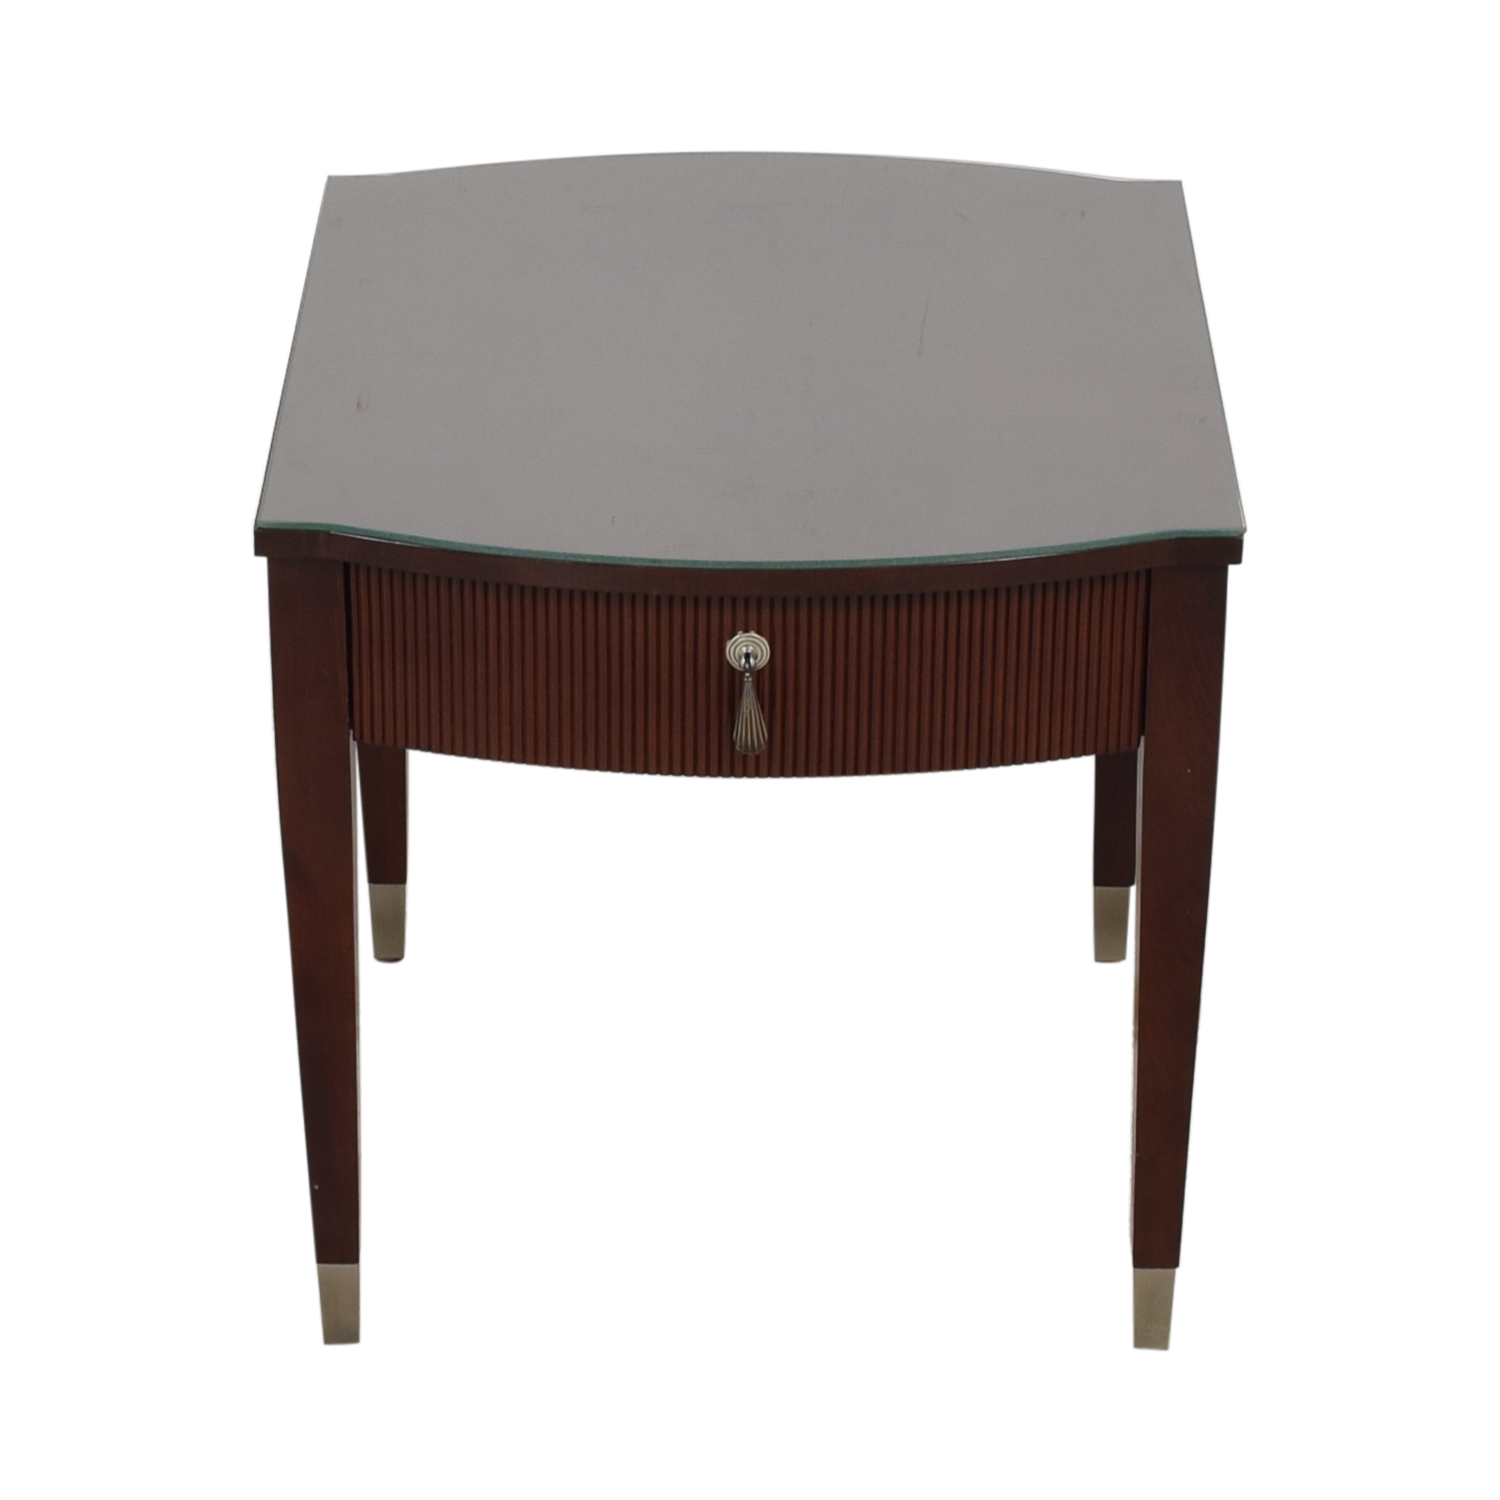 Ethan Allen Ethan Allen Avenue Side Table with Drawer